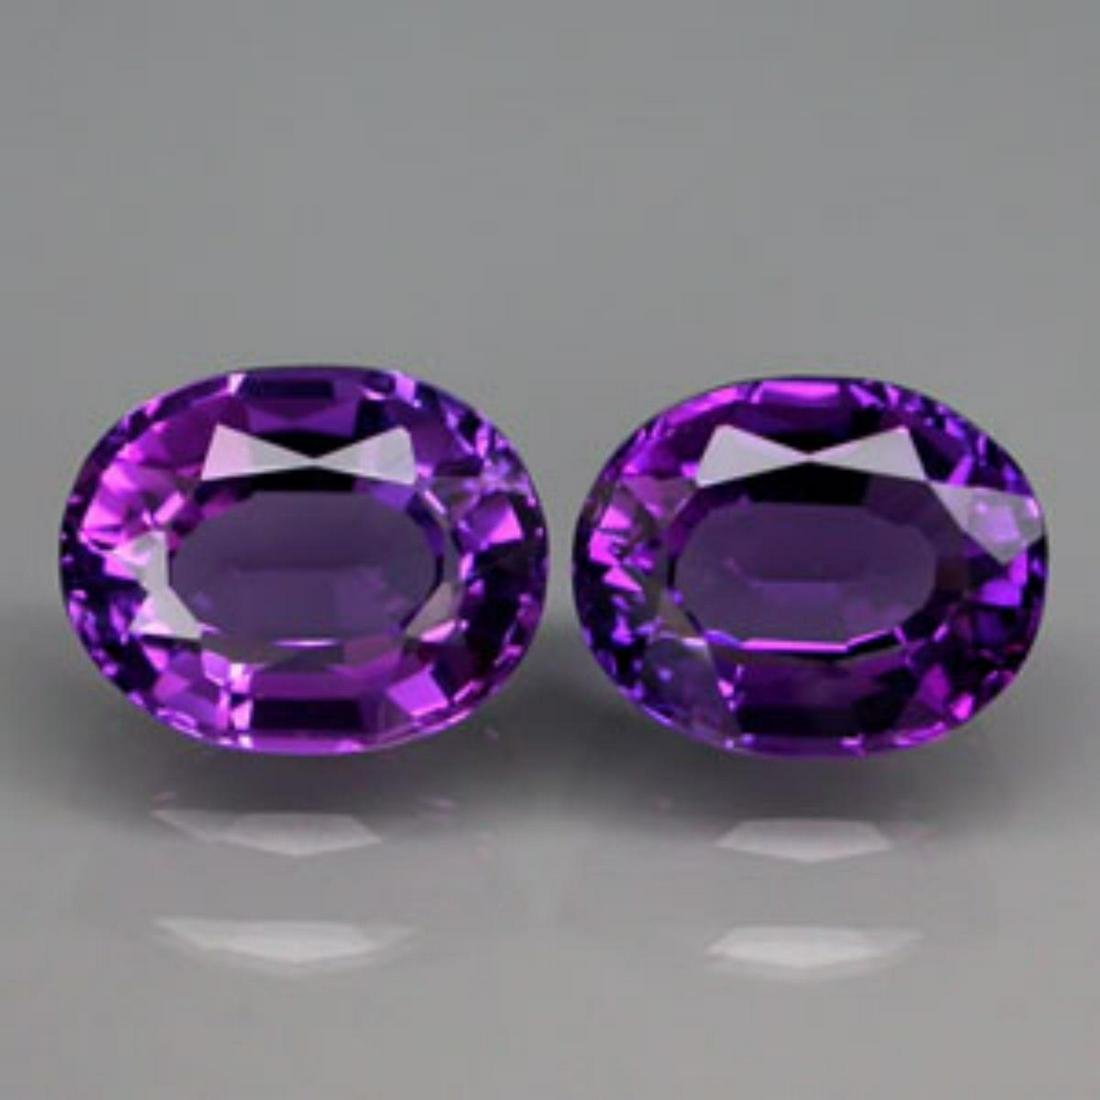 Natural Amethyst Pair 20.21 Carats - VVS